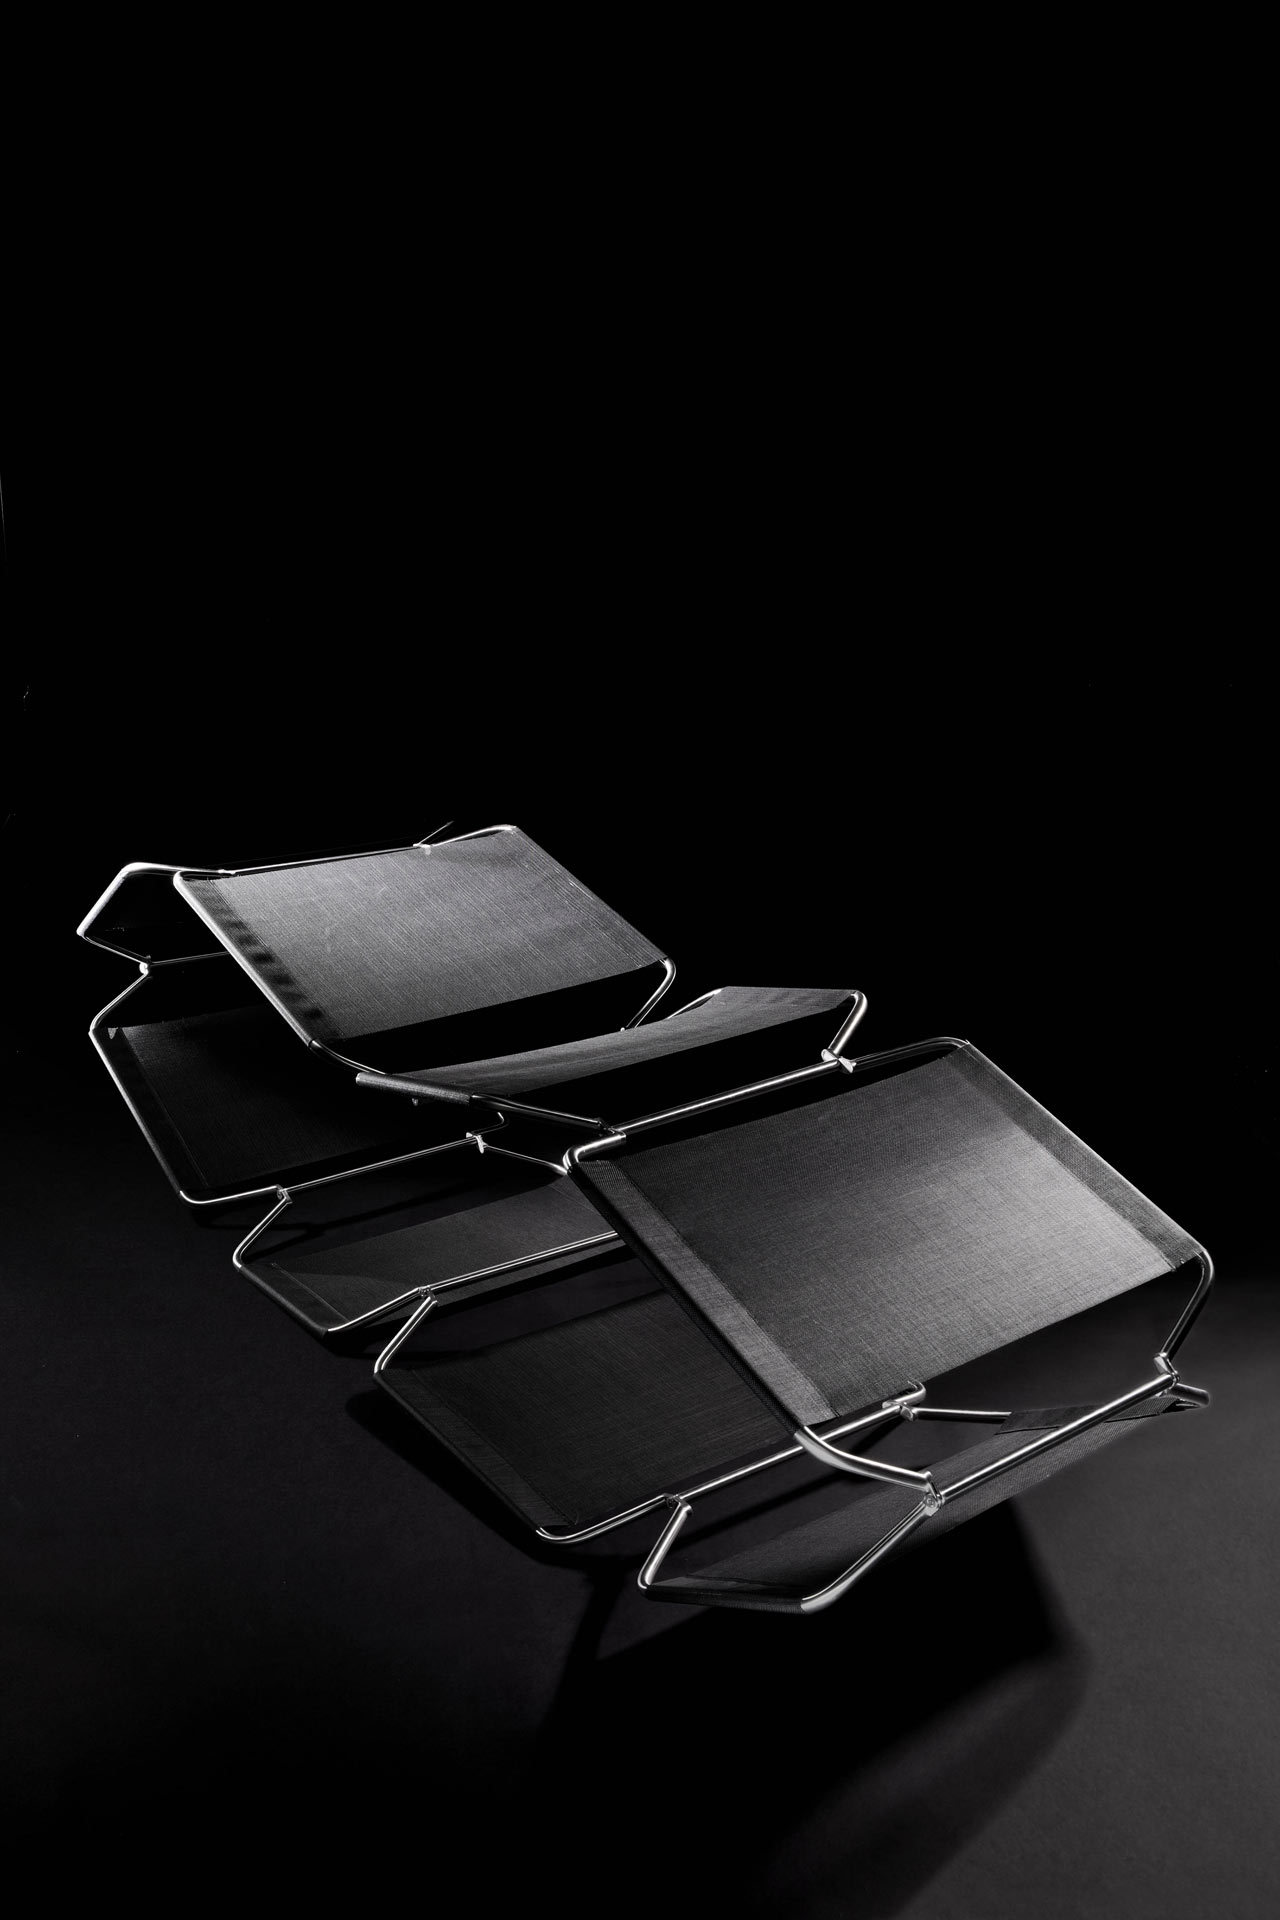 transformable-sofa-design-lounge-chair-1